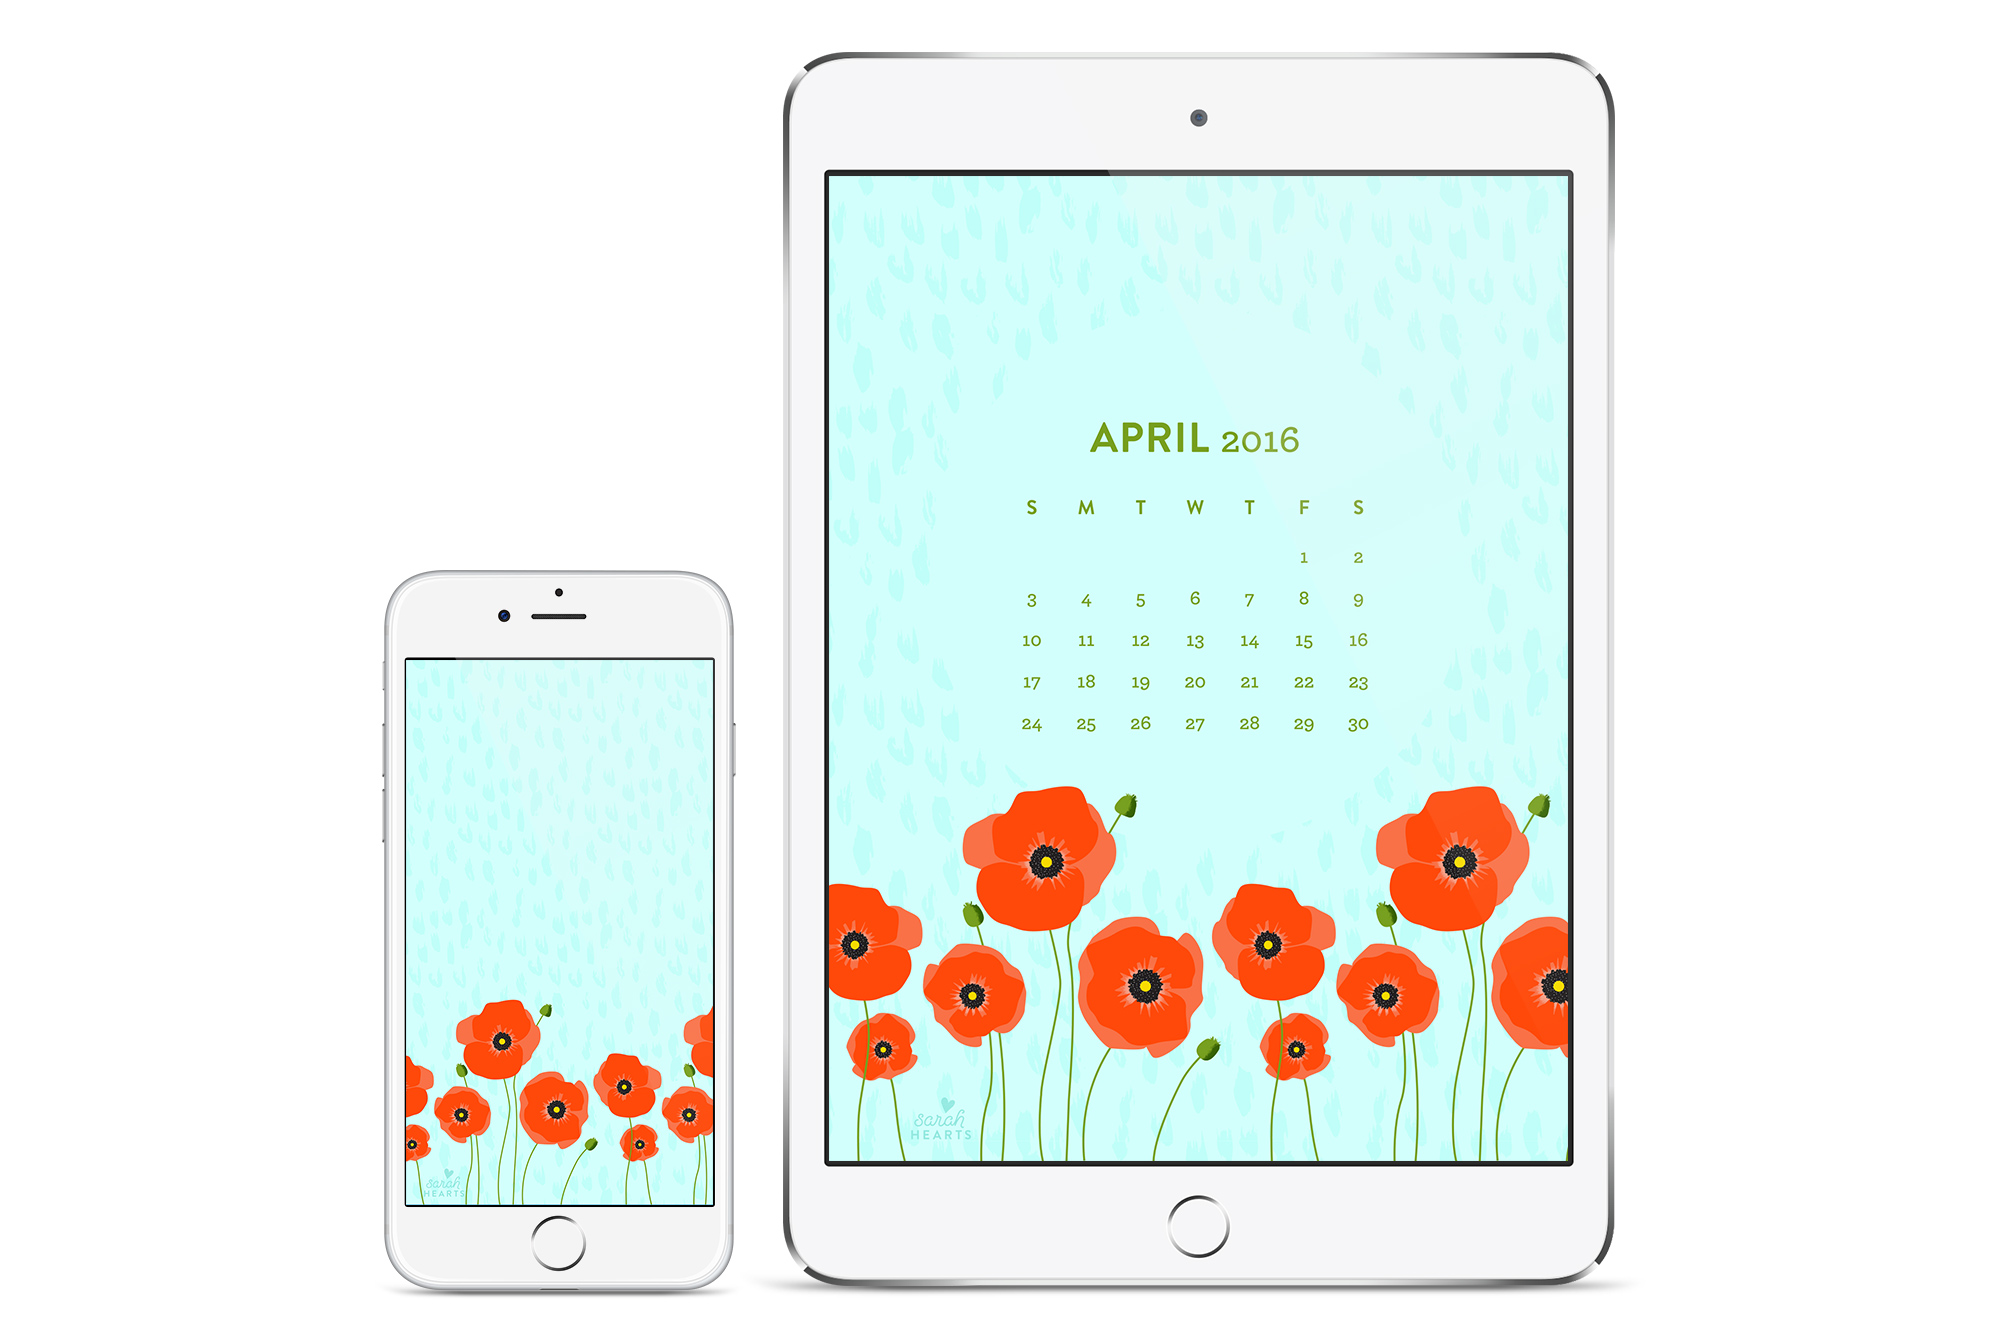 Add some fresh picked poppy flowers to your phone or tablet with this free downloadable calendar wallpaper by @sarahhearts.